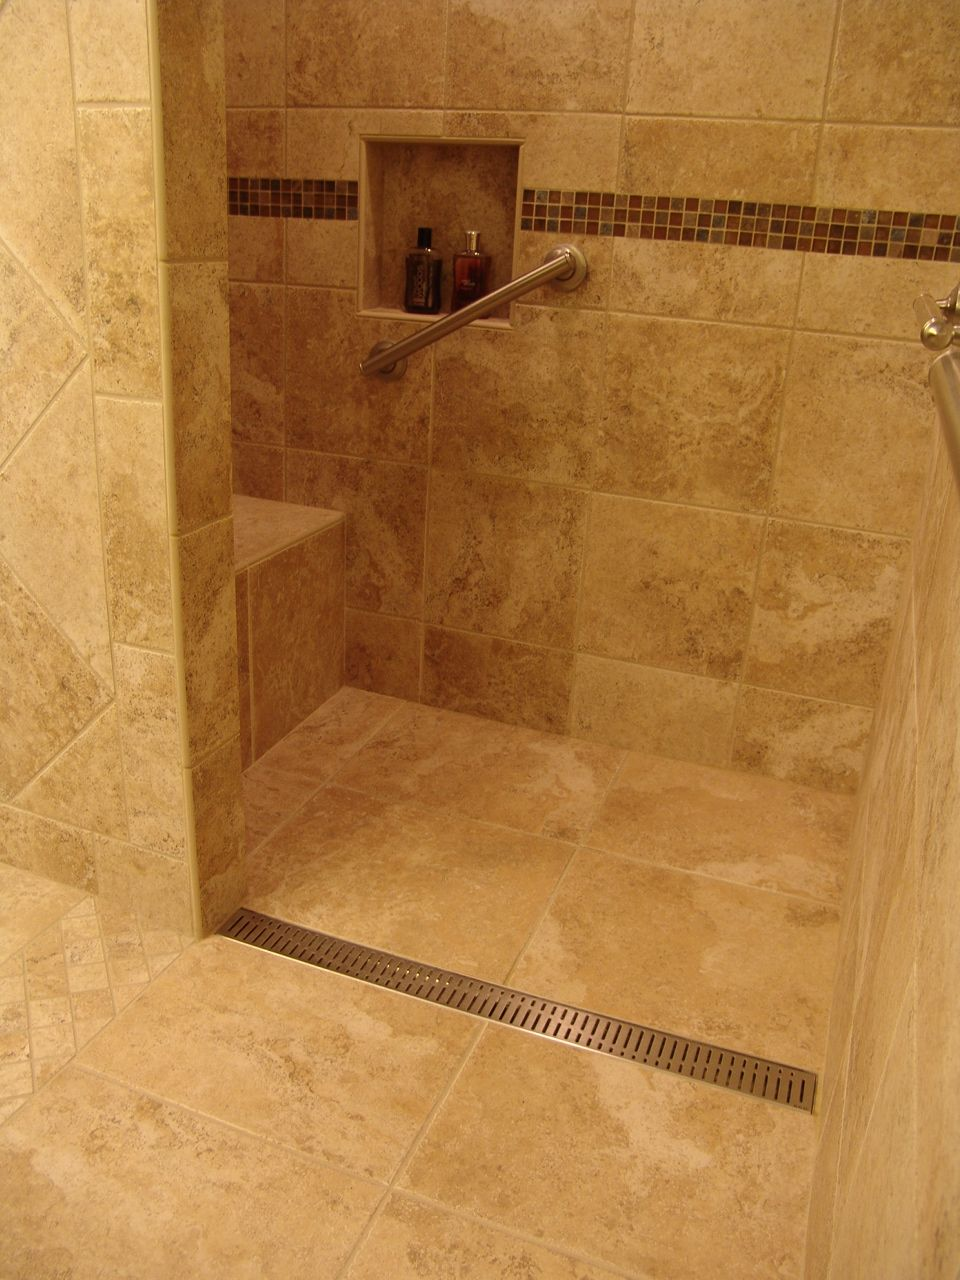 pics of tile bathroom showers | Ceramic Tile Knoxville | Tile ...